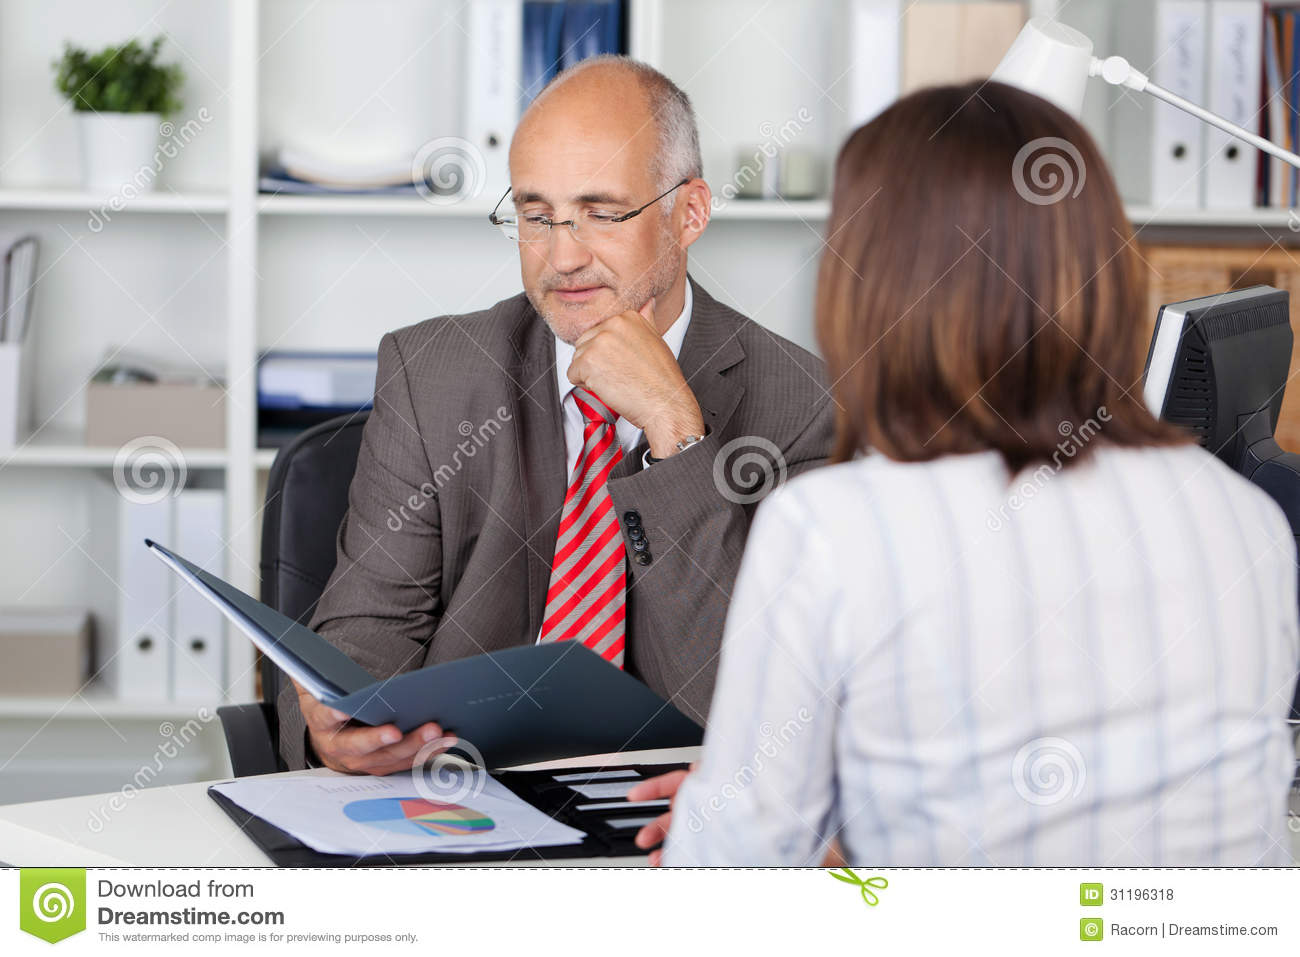 cv businessman stock images